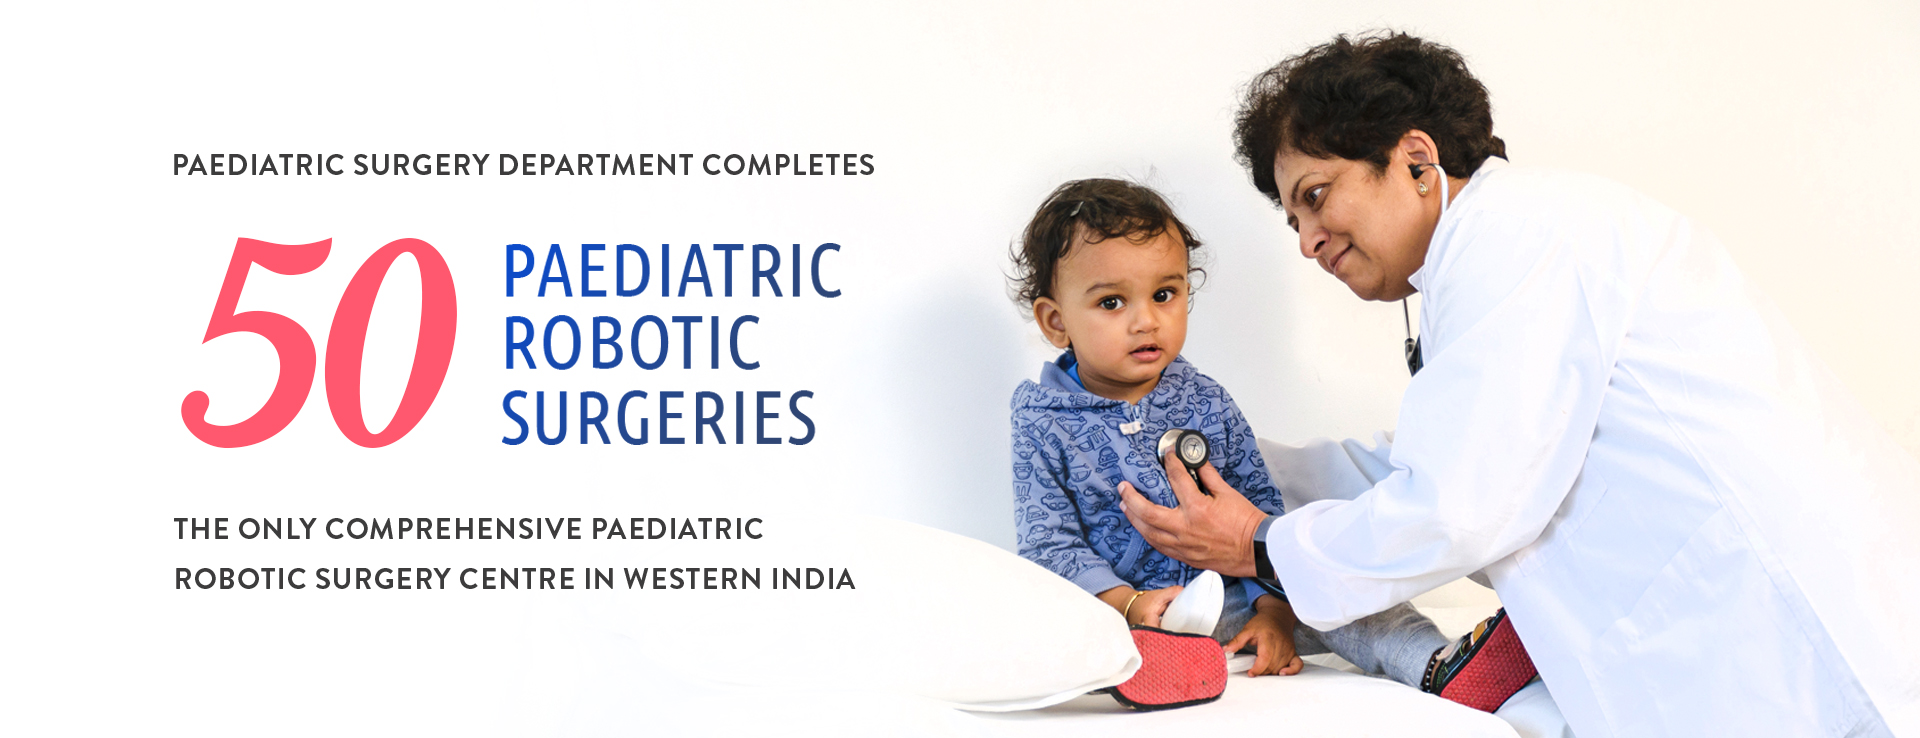 Children's Surgery Centre in Mumbai